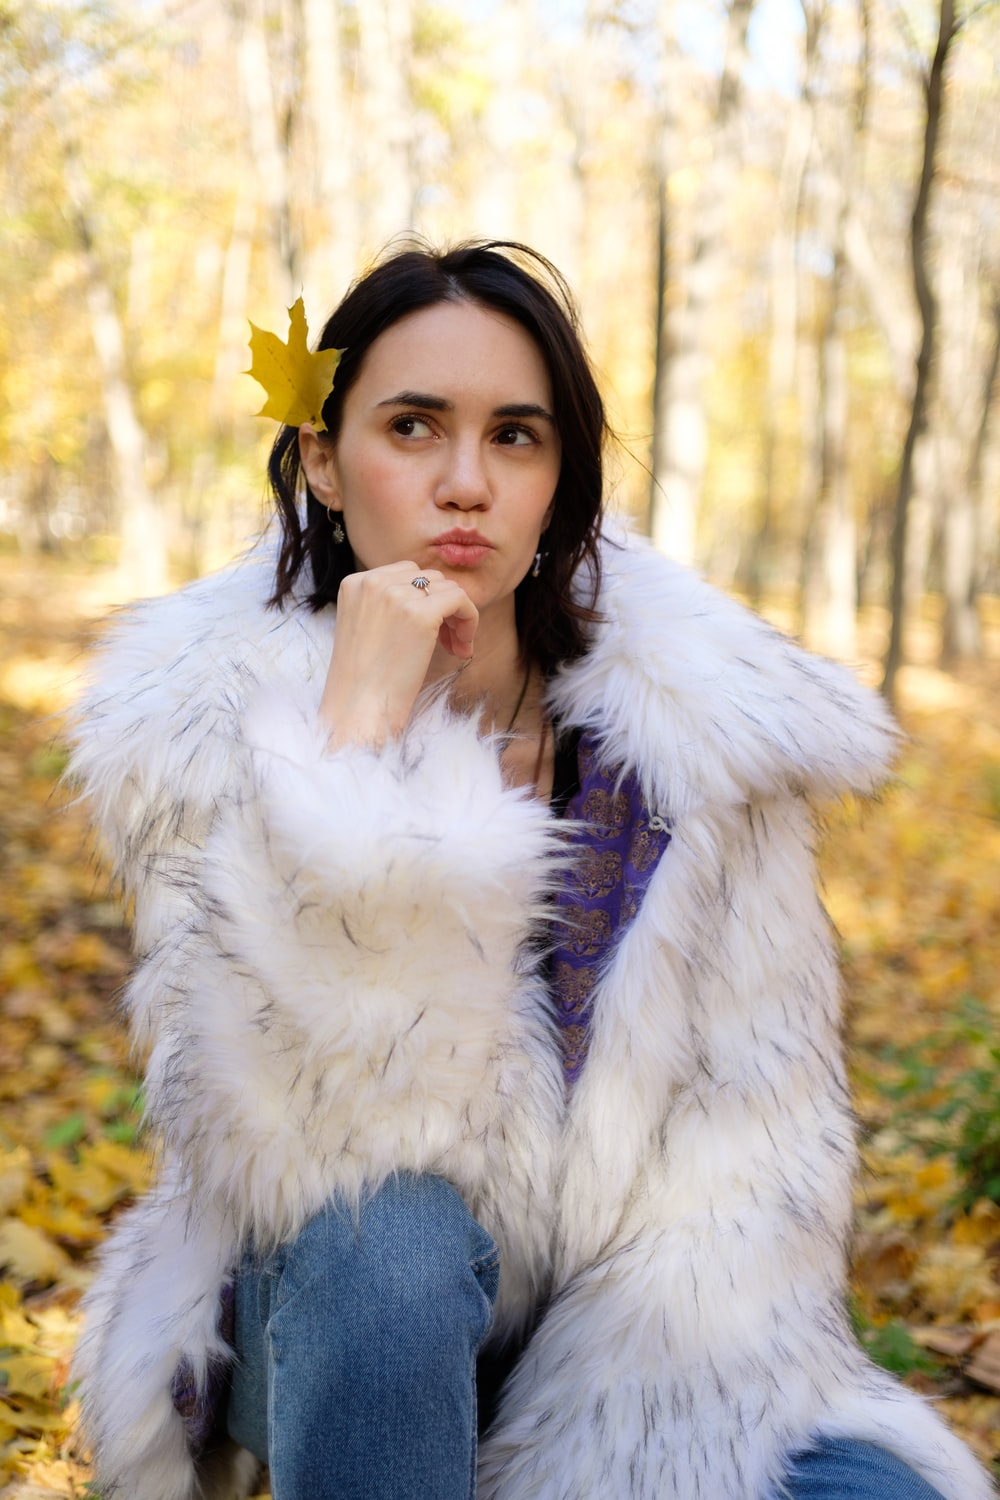 shallow focus photo of woman in white fur jacket